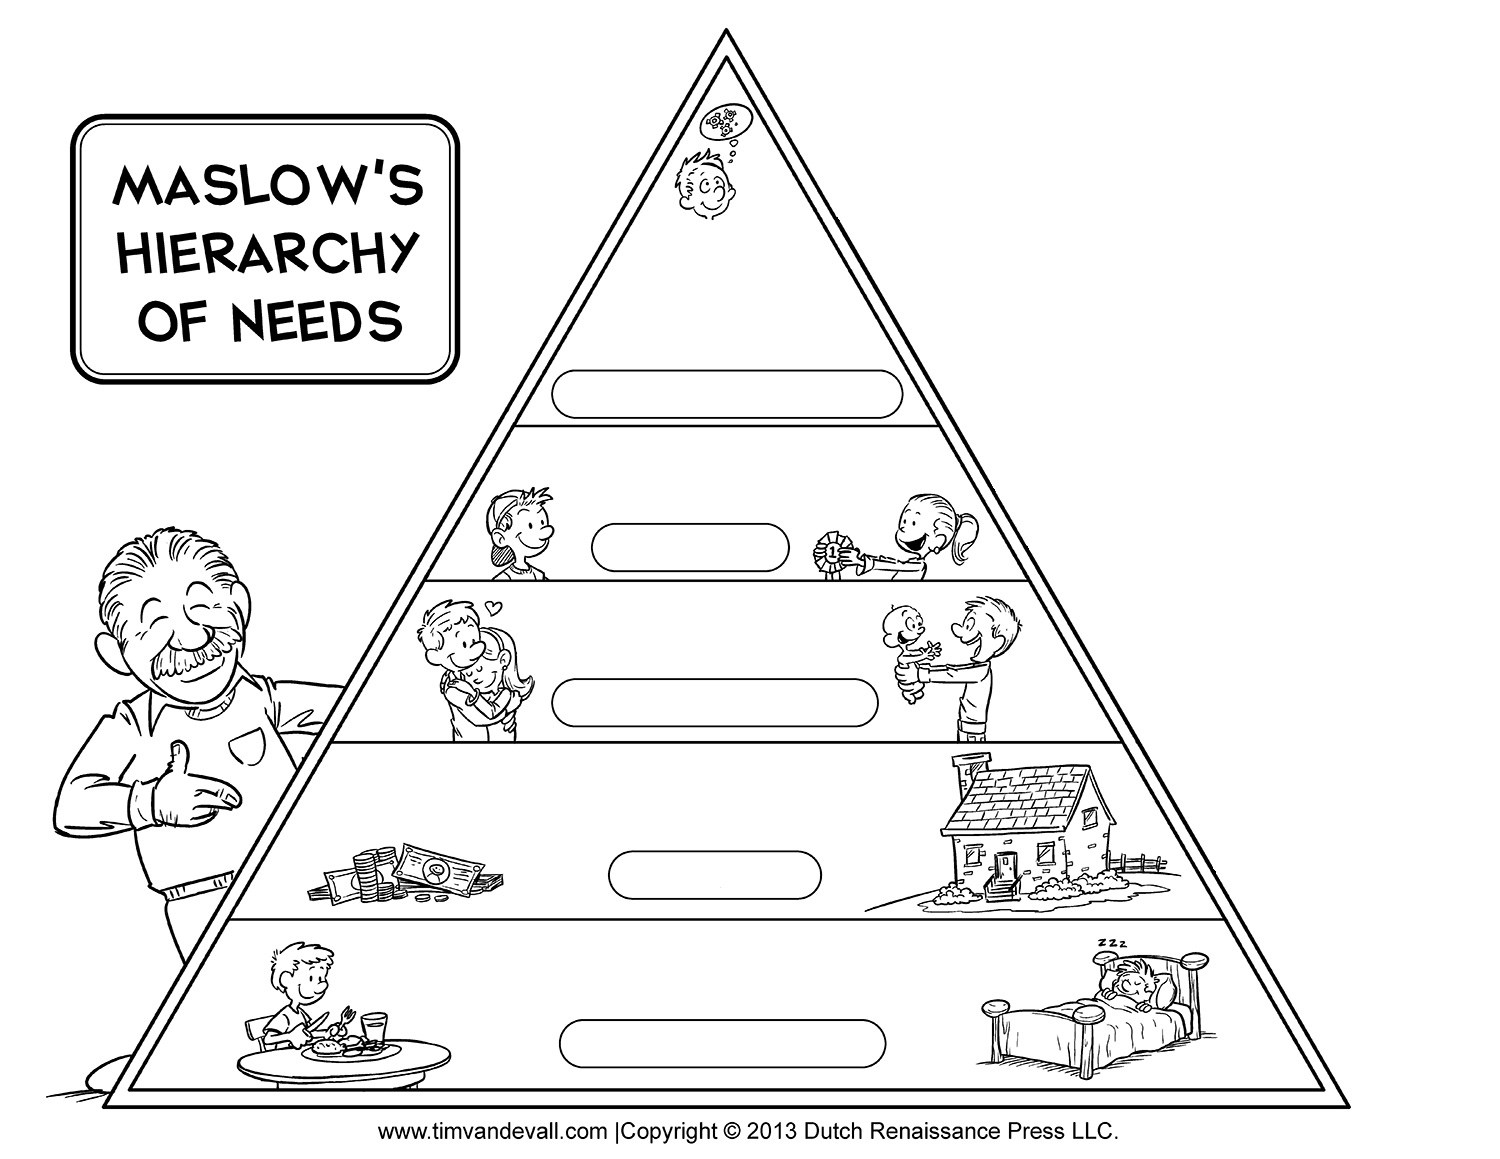 maslow u0026 39 s hierarchy of needs - blank